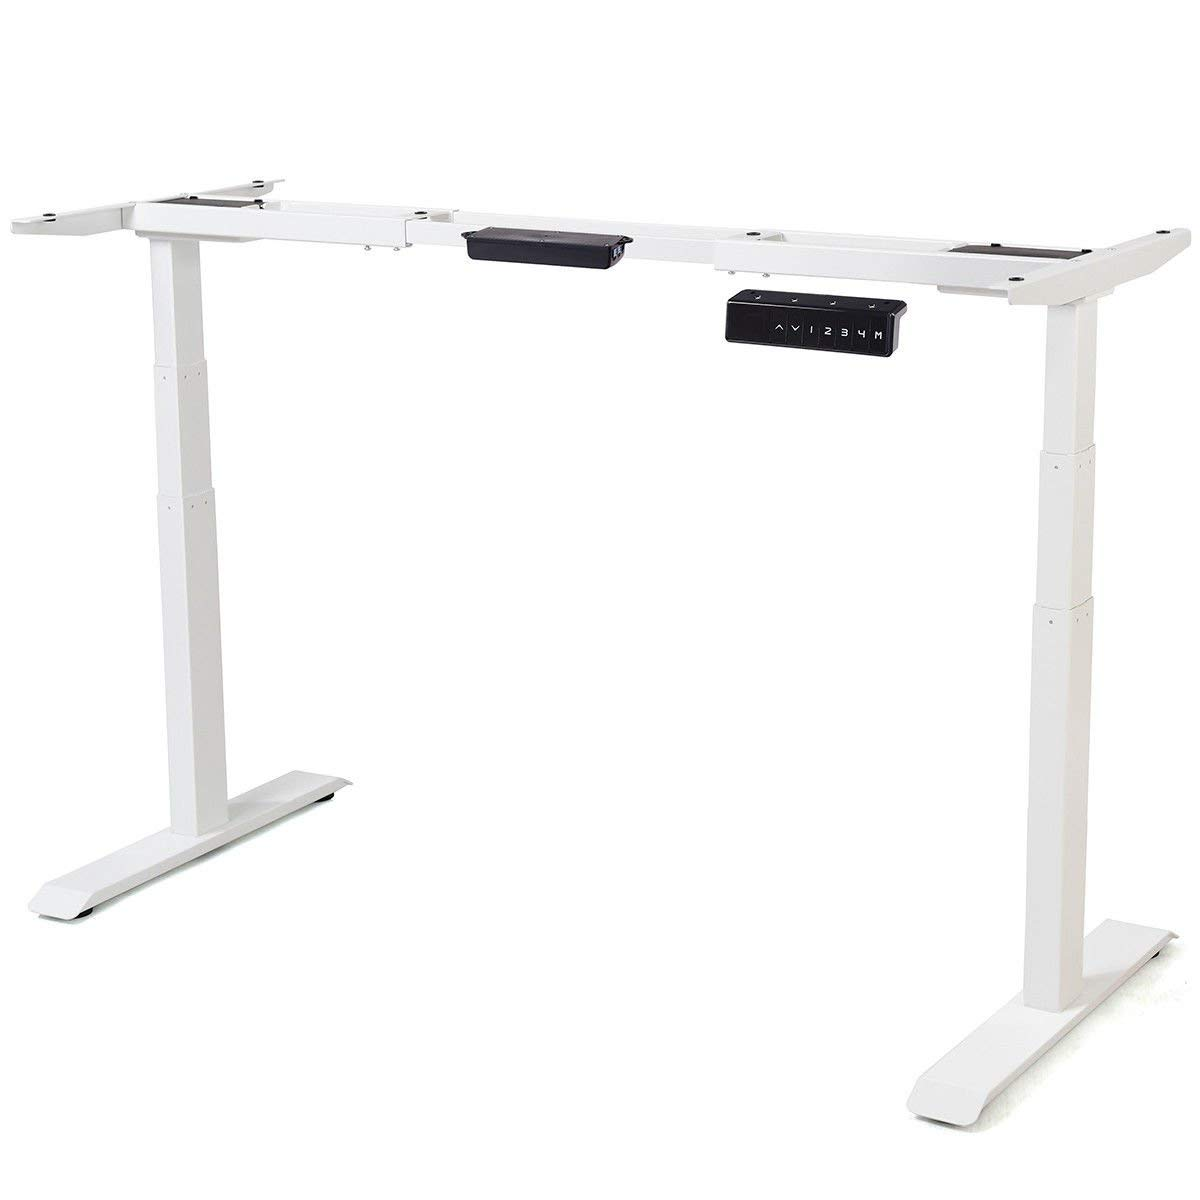 Tangkula Electric Standing Desk Frame Home Office Adjustable Height & Width Standing Desk FrameErgonomic Dual Motor Motorized Sit to Stand Desk with Memory Preset Handset Controller(001, White)